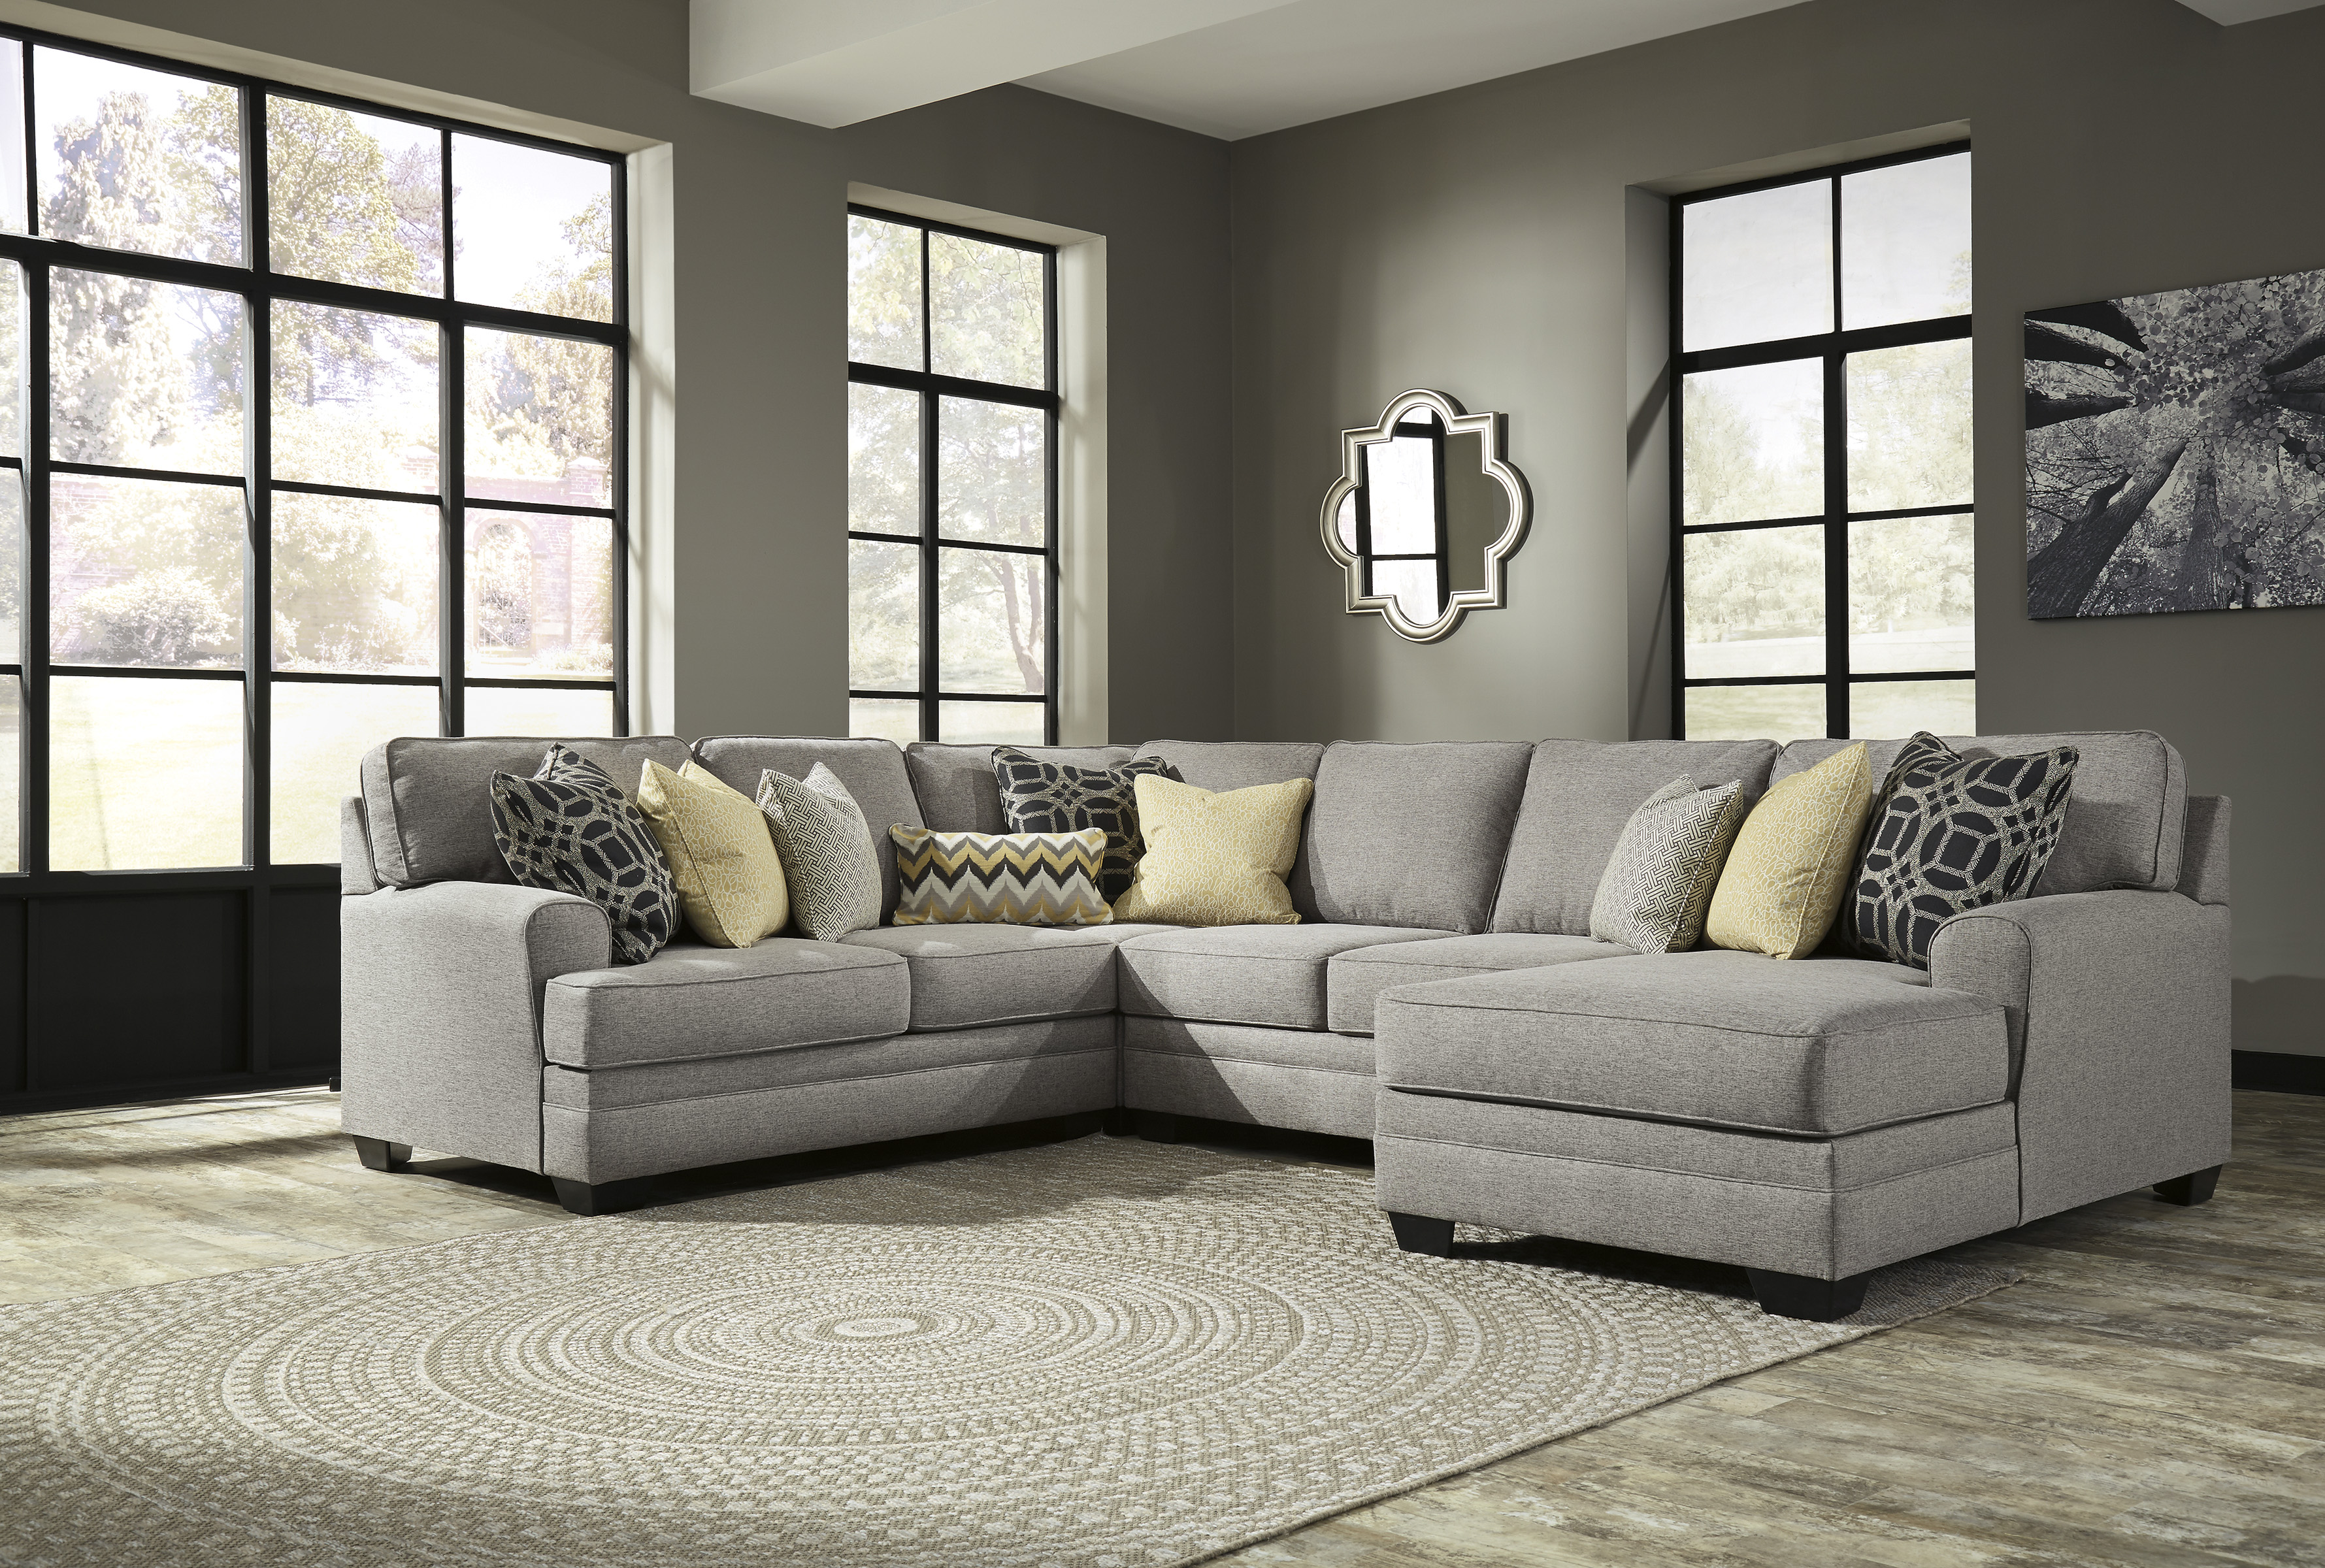 Cresson Pewter Raf Or Laf 4 Piece Chaise Sectional